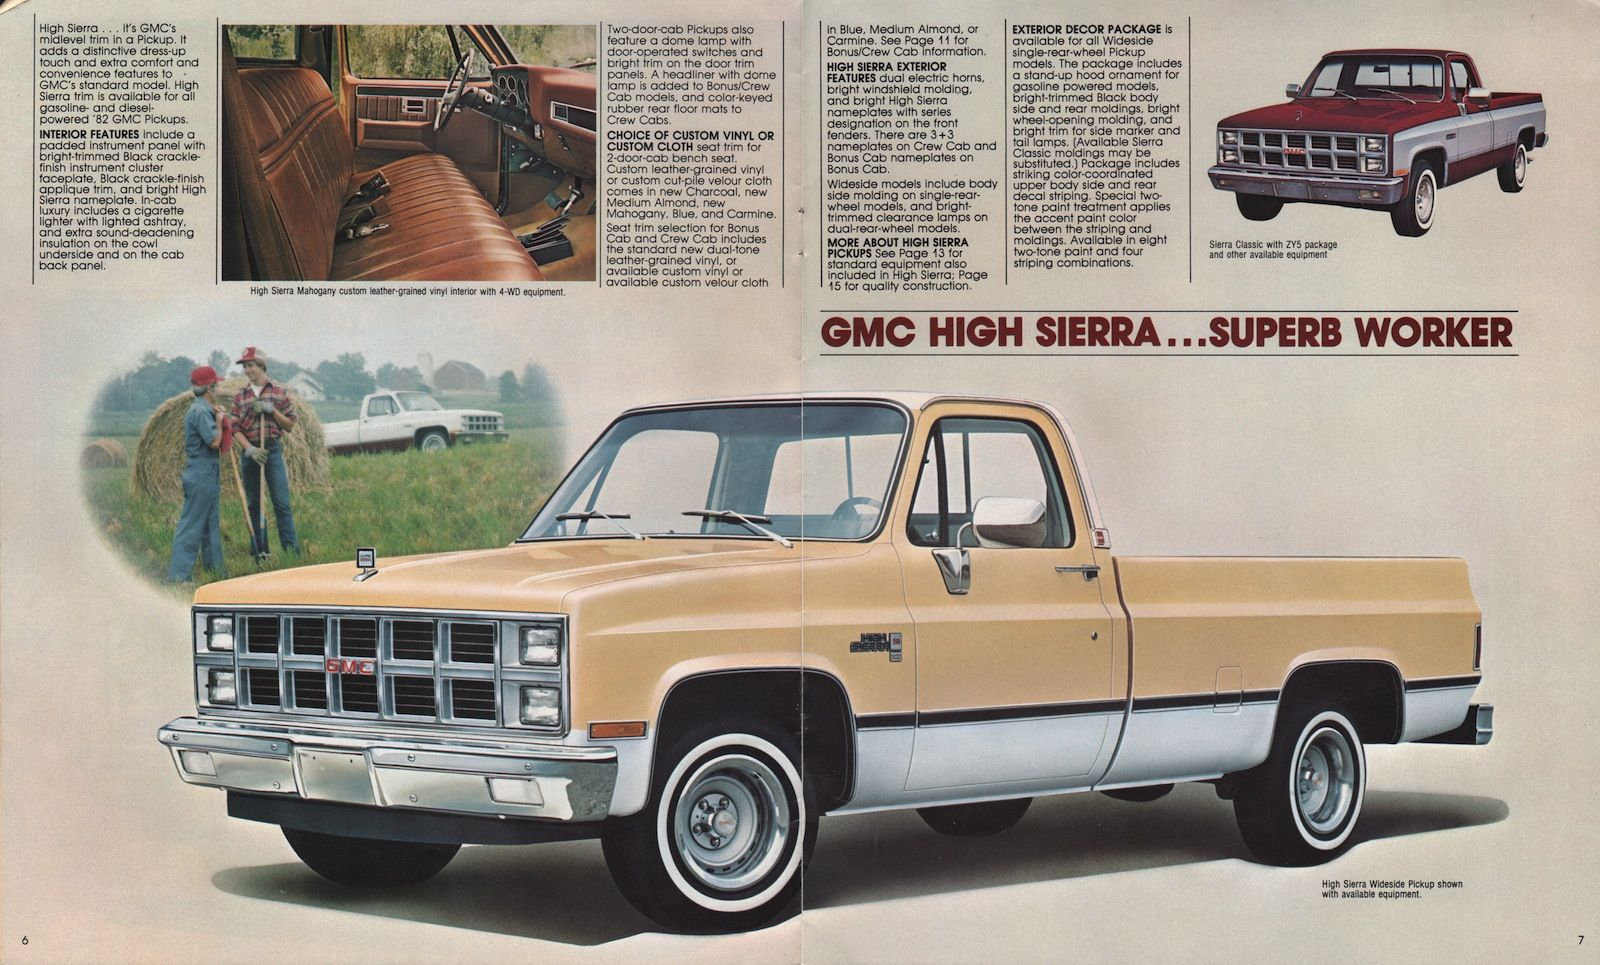 1982 GMC High Sierra | Squarebodies | Pickup trucks, Chevy